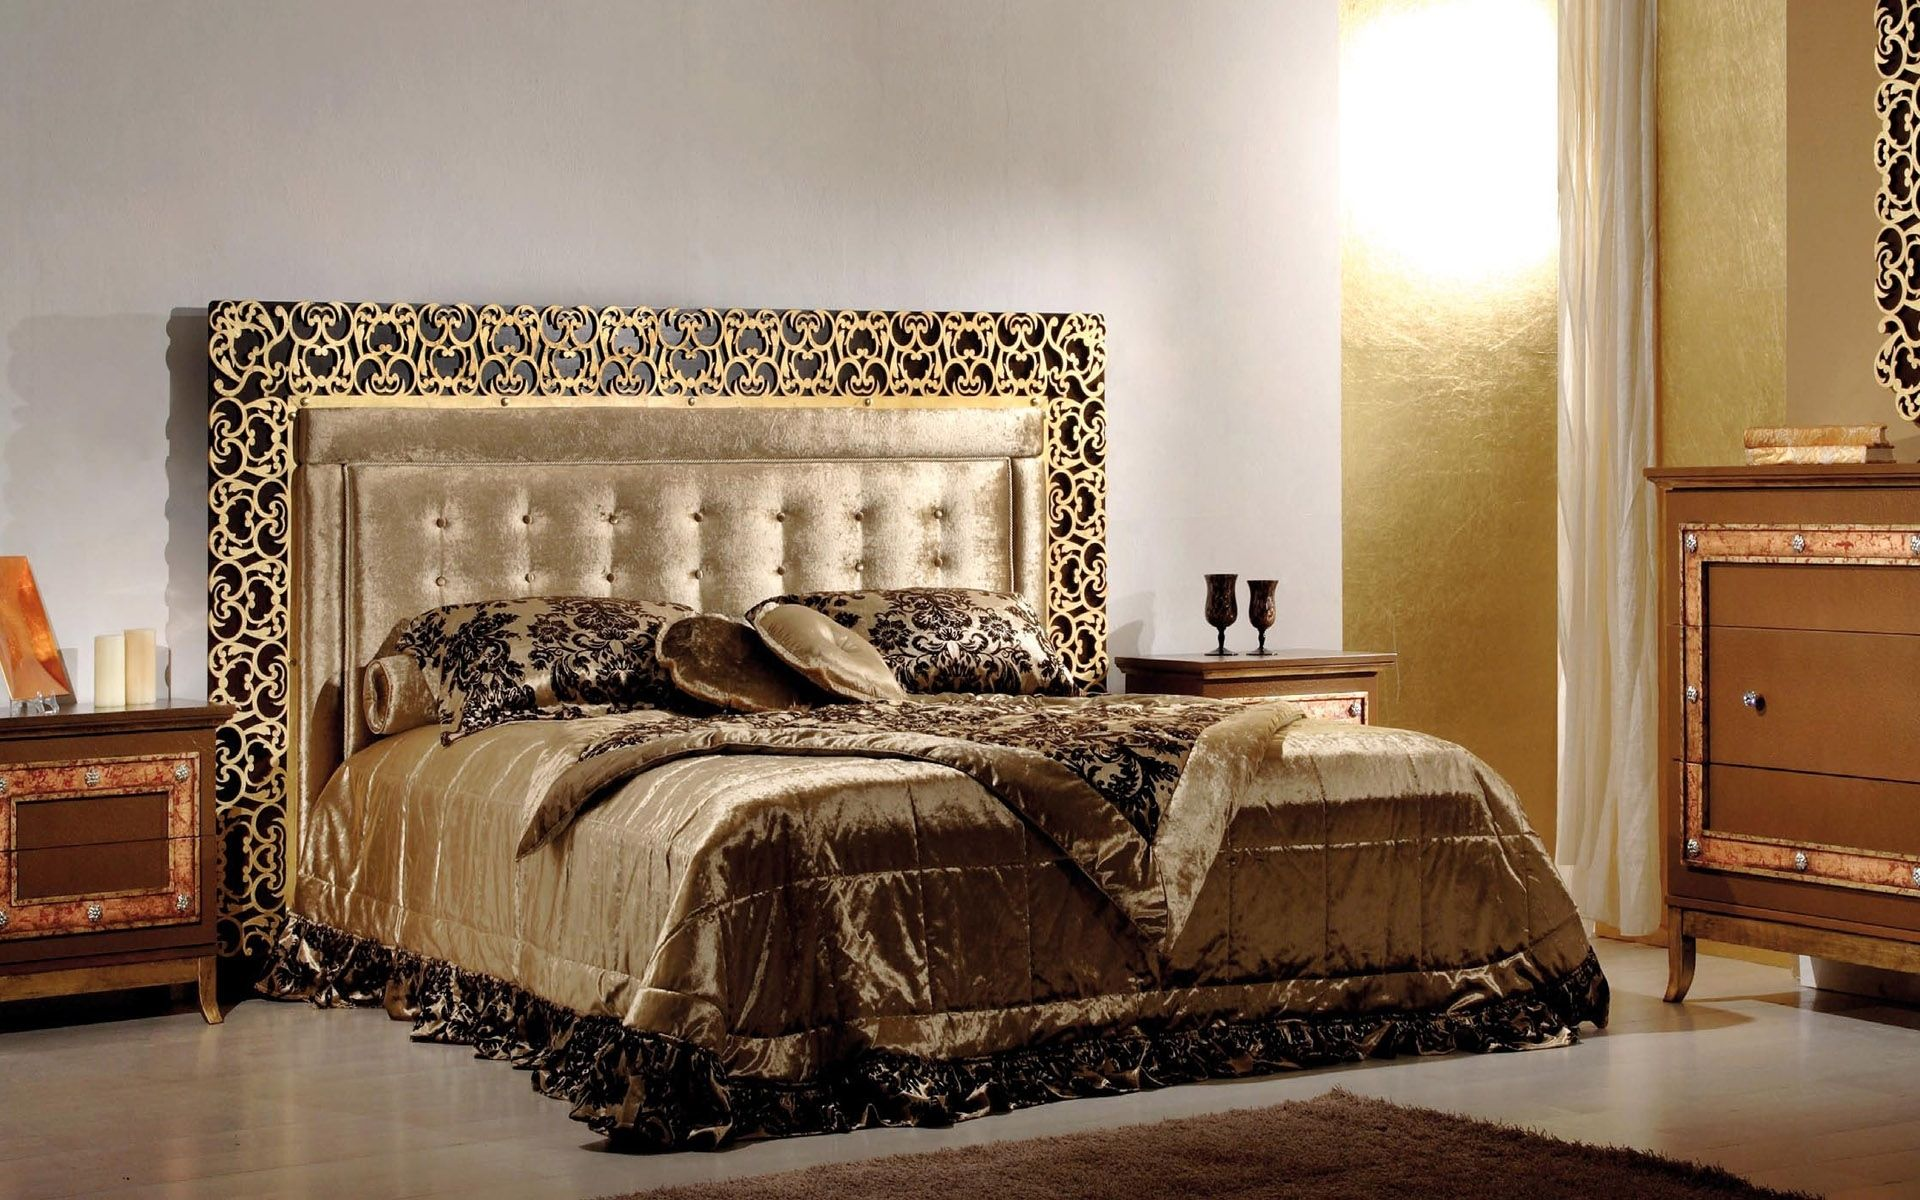 luxury inspiration bed collection design modern gold black luxury bedding set modern bedding. Black Bedroom Furniture Sets. Home Design Ideas